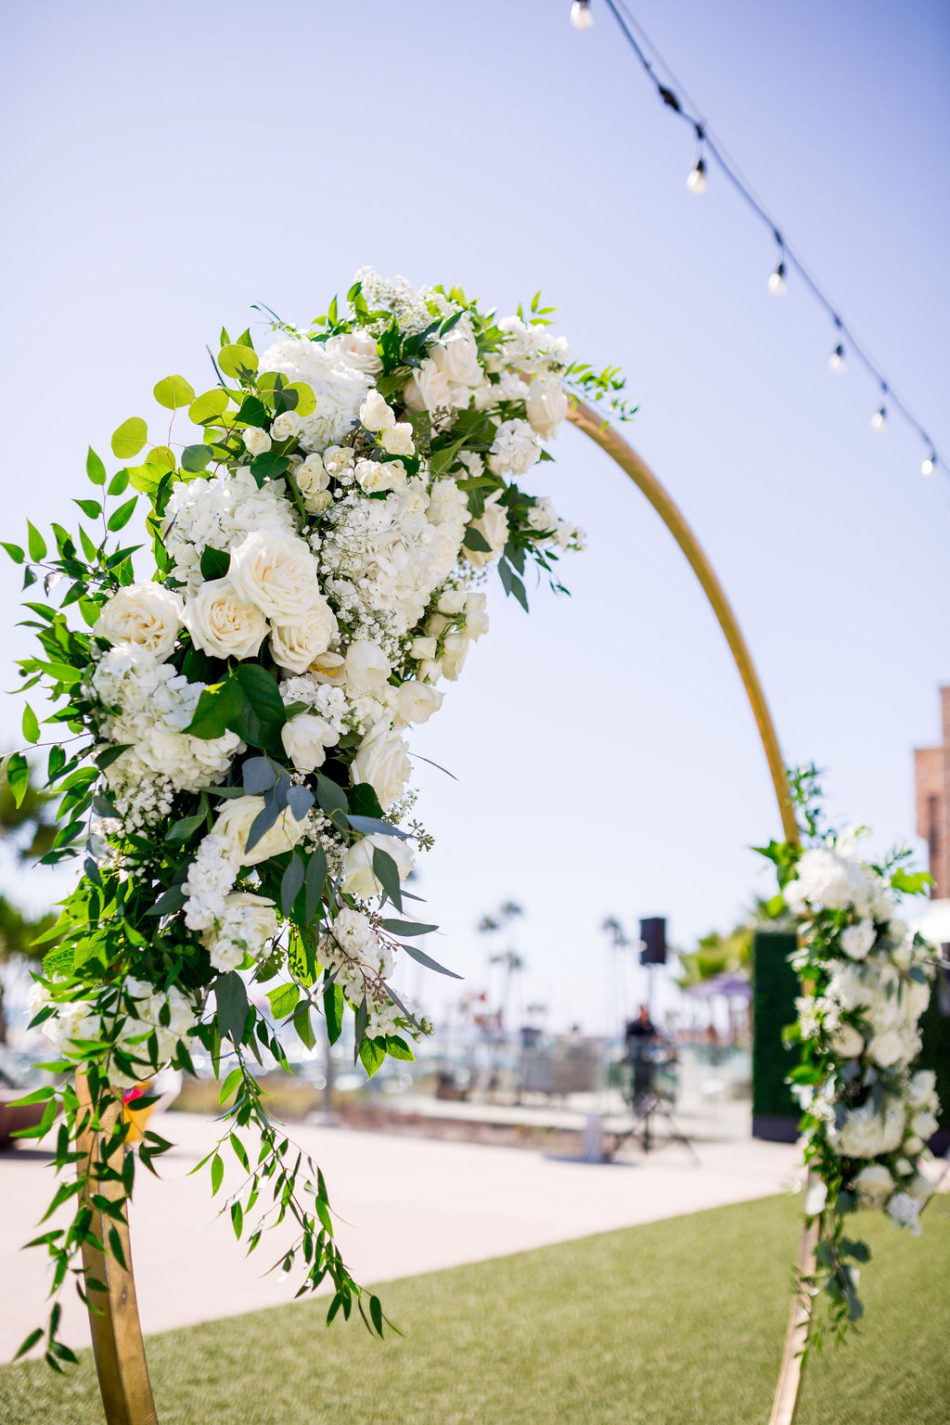 ceremony florals, floral arch, ethereal white wedding, florist, wedding florist, wedding flowers, orange county weddings, orange county wedding florist, orange county florist, orange county floral design, flowers by cina